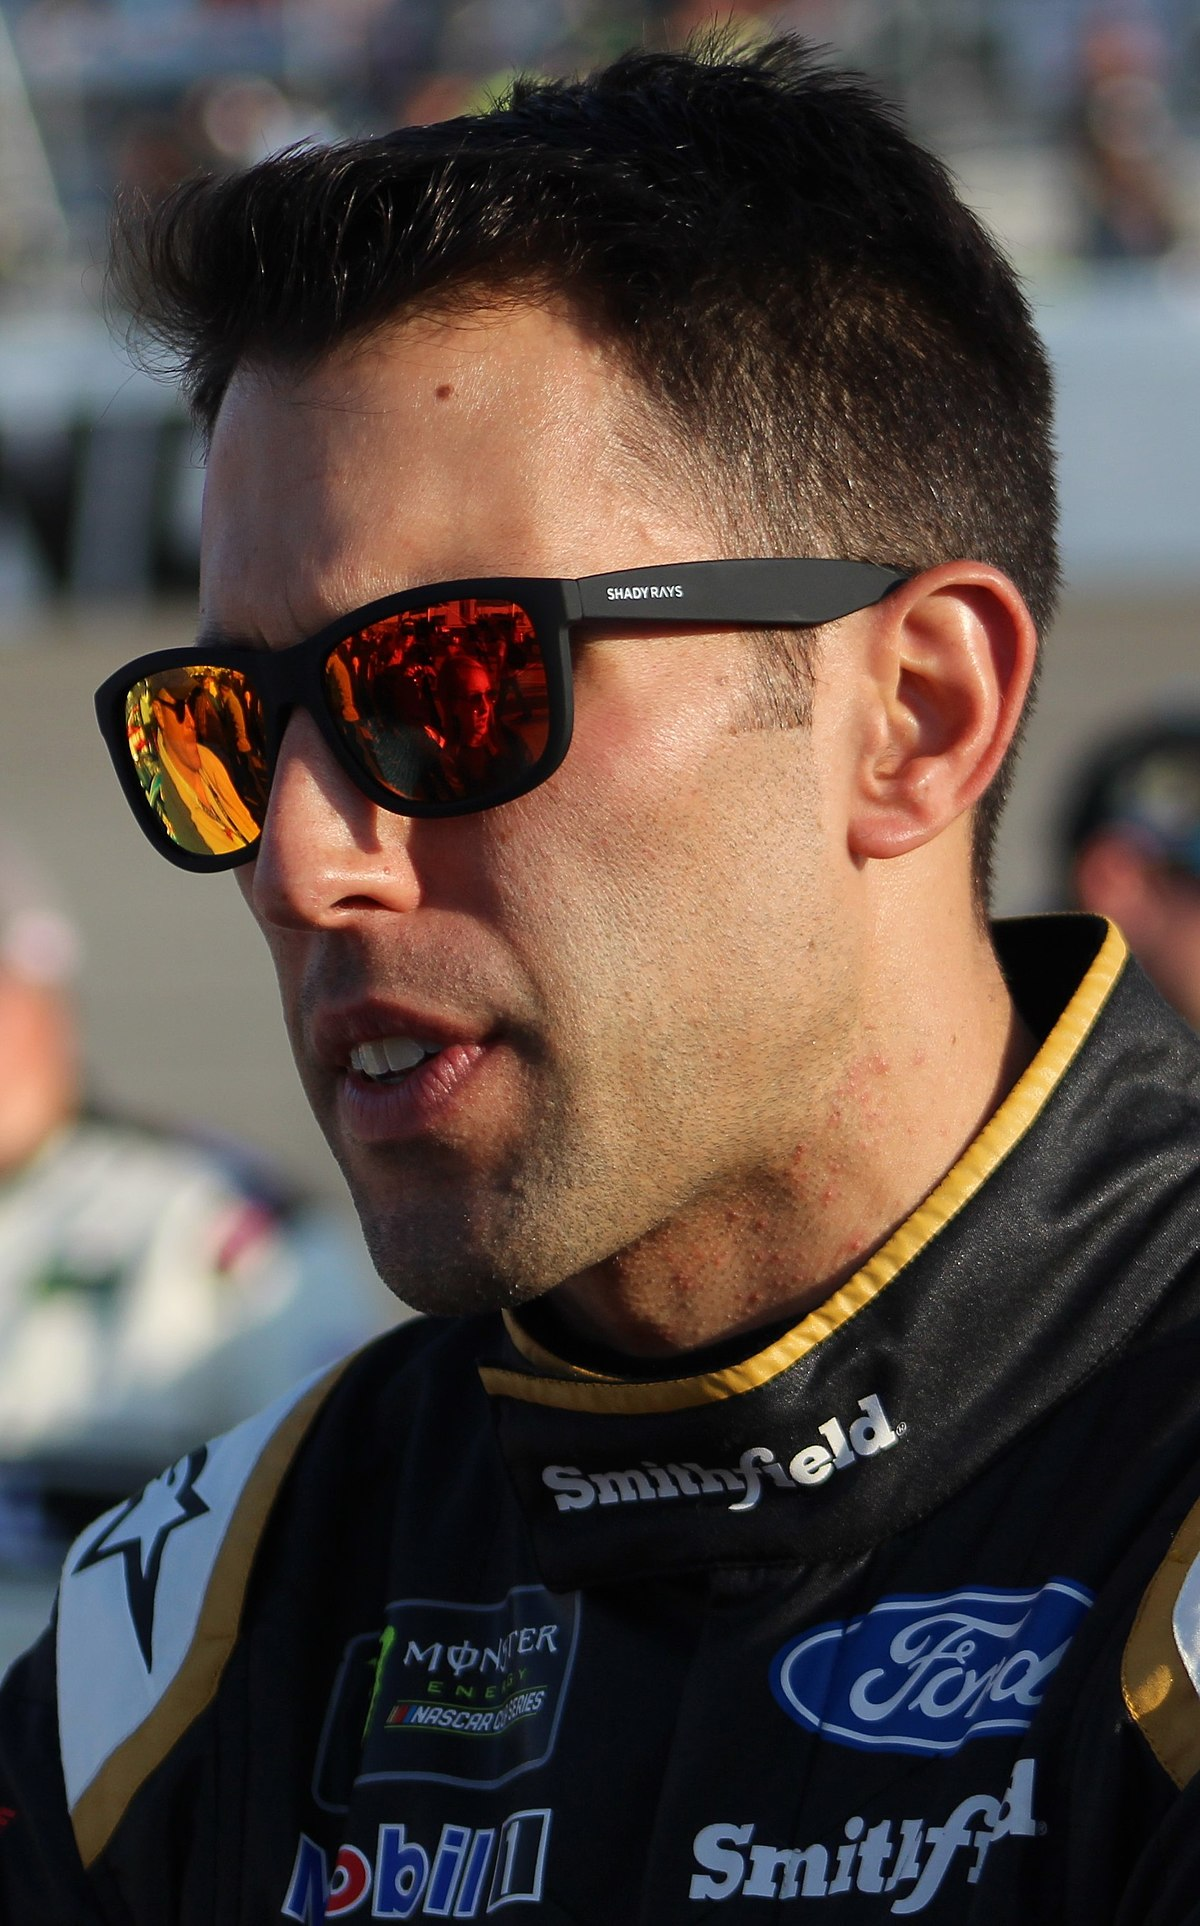 Daytona Dog Track Race Results : daytona, track, results, Almirola, Wikipedia